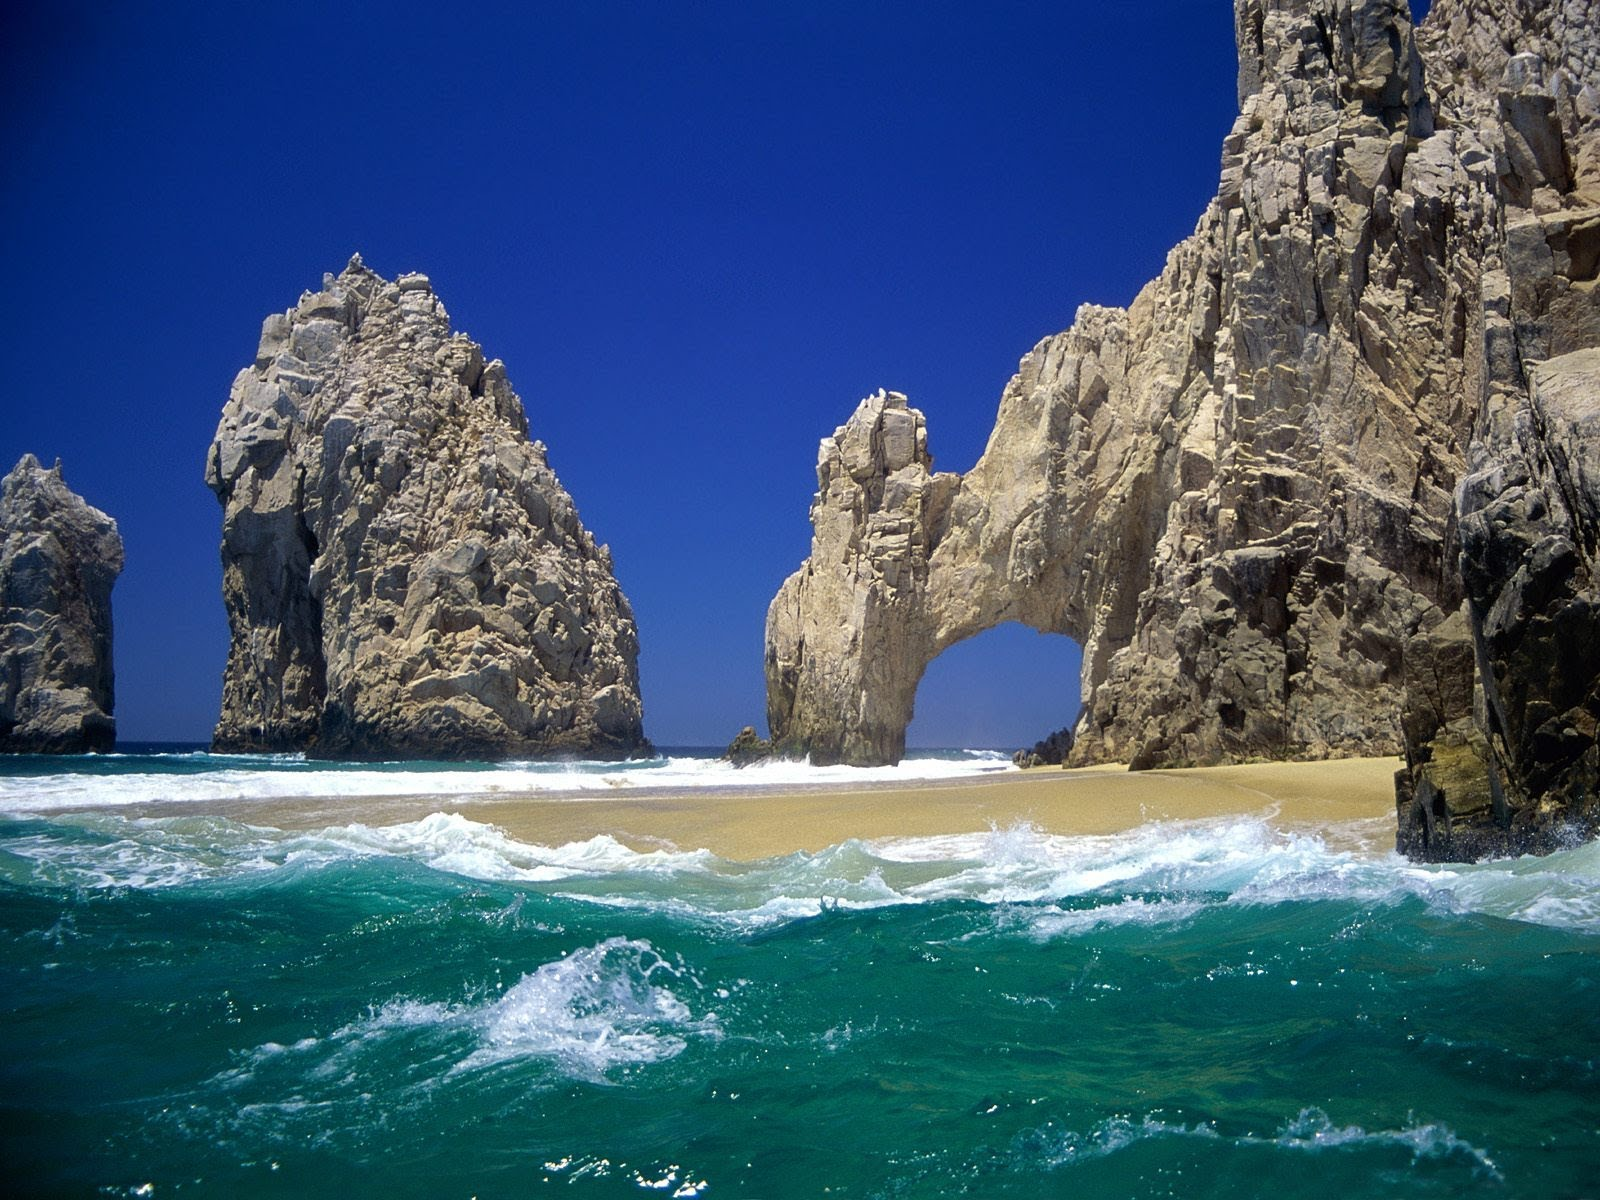 cabo-san-lucas-mexico-travel-photosv8